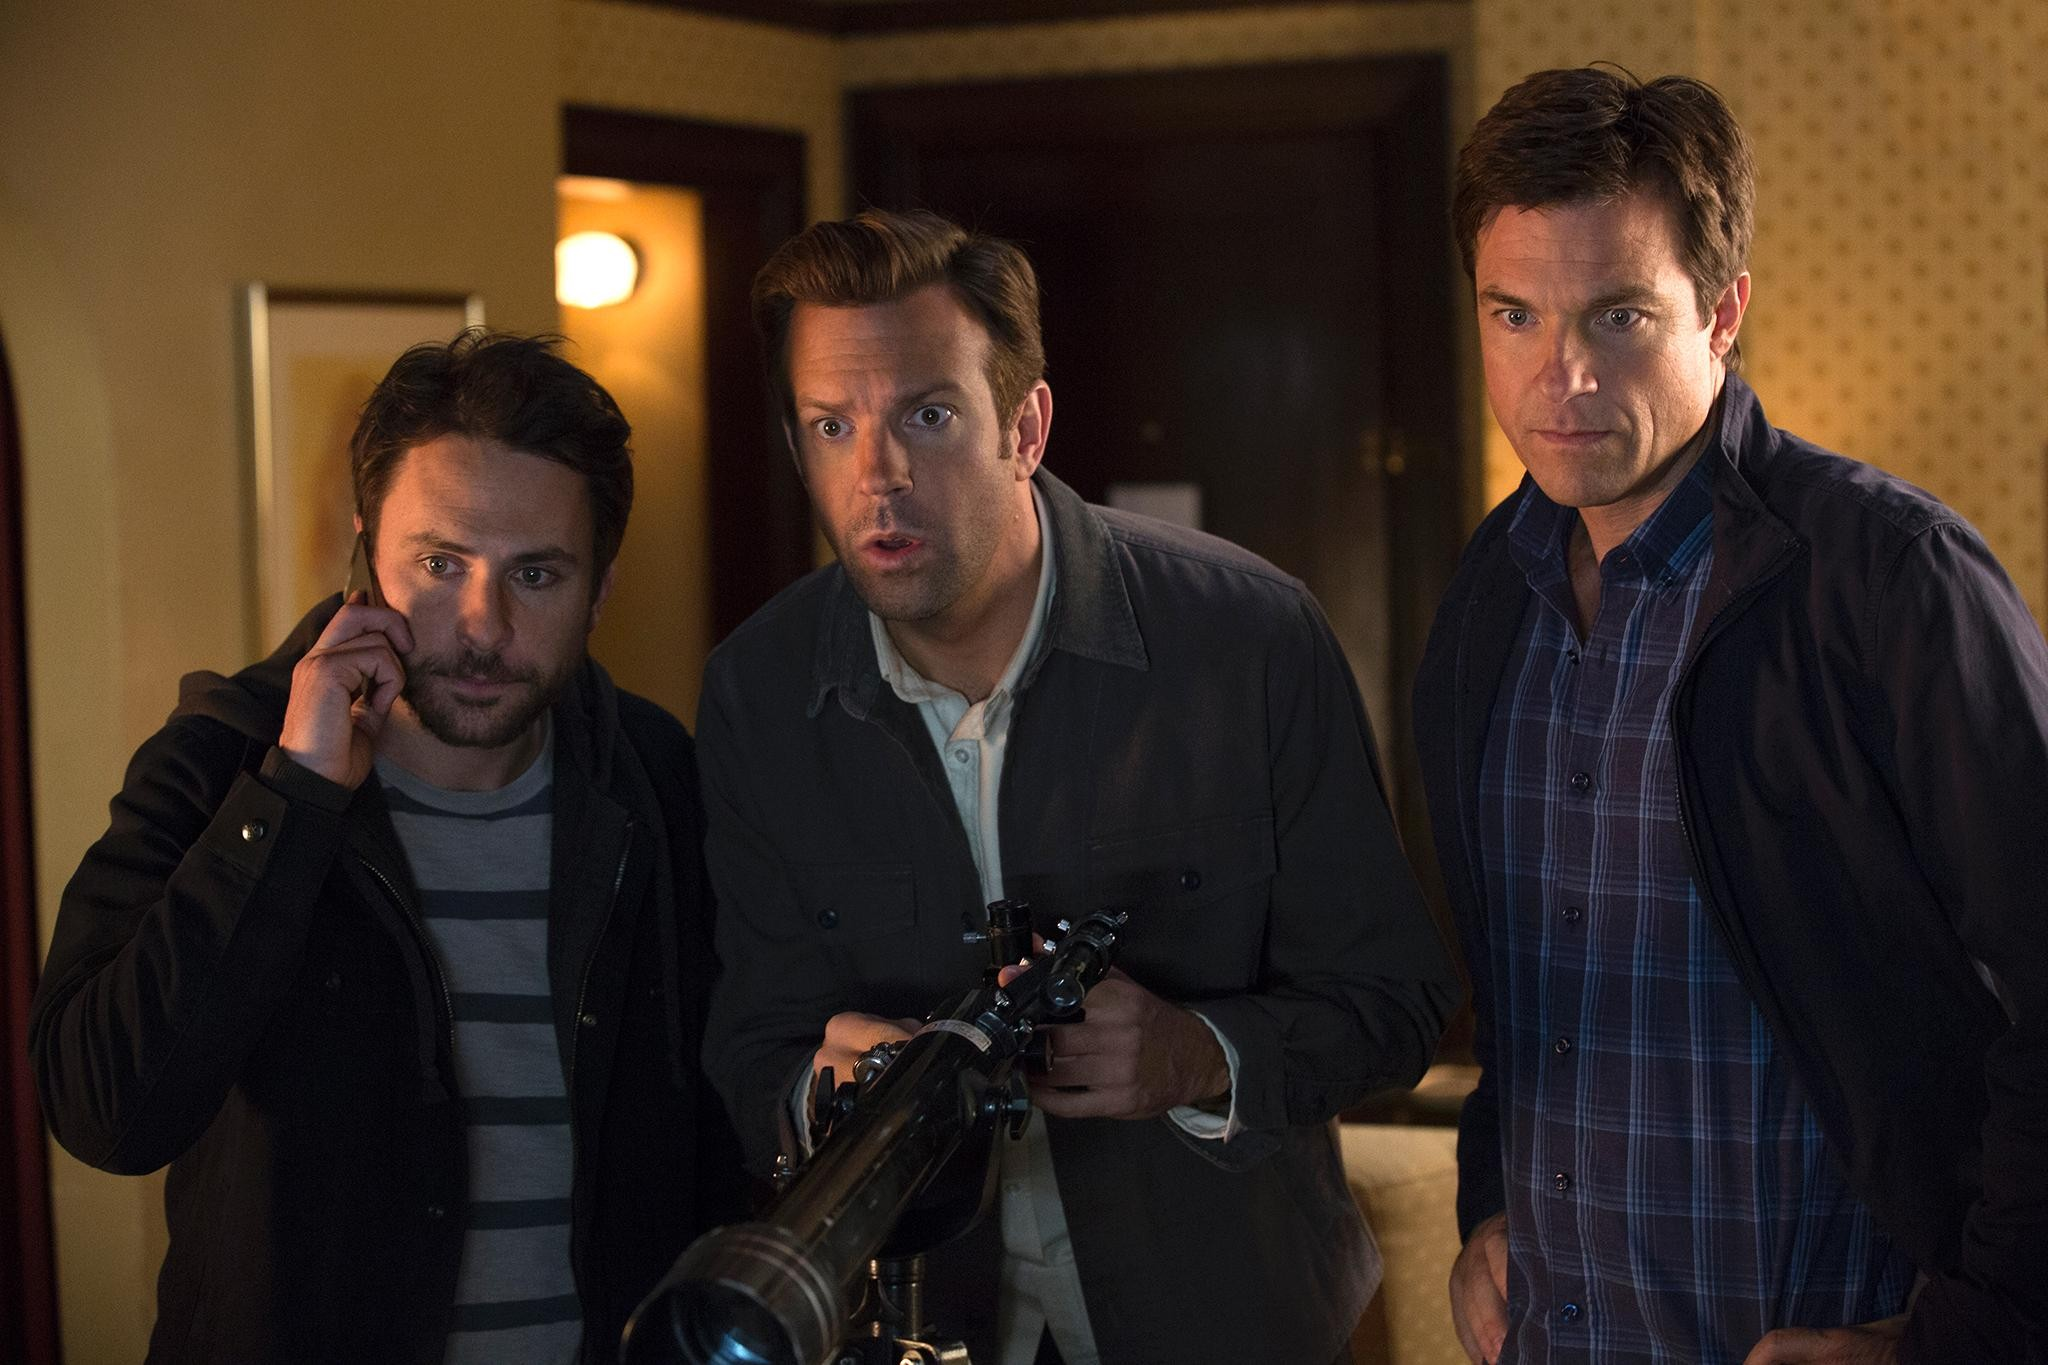 Jason Bateman and Pals Break Bad in the 'Horrible Bosses 2' Trailer